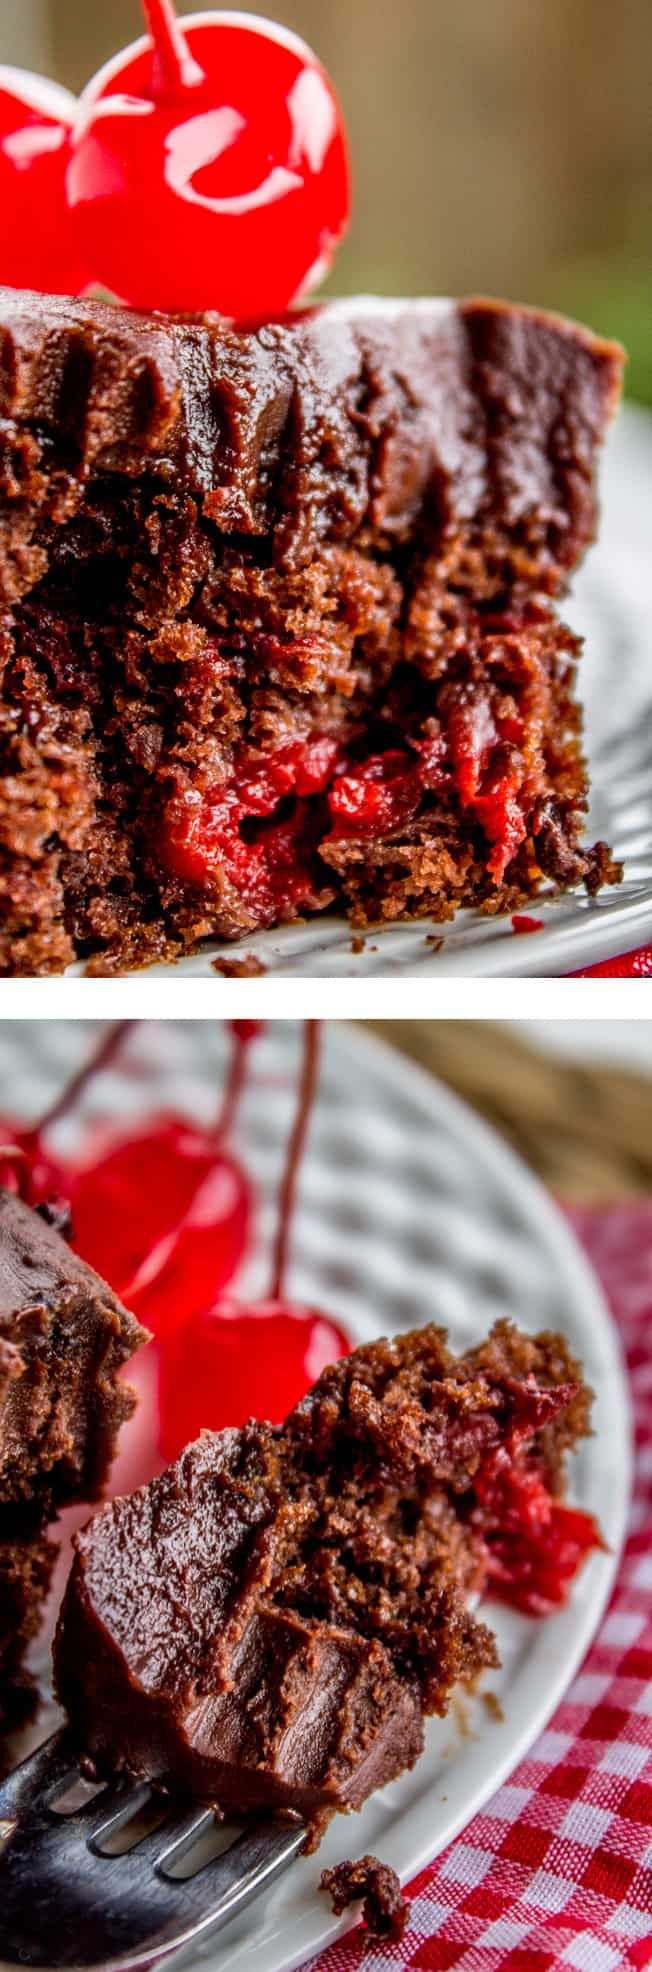 Recipe using chocolate cake mix cherry pie filling